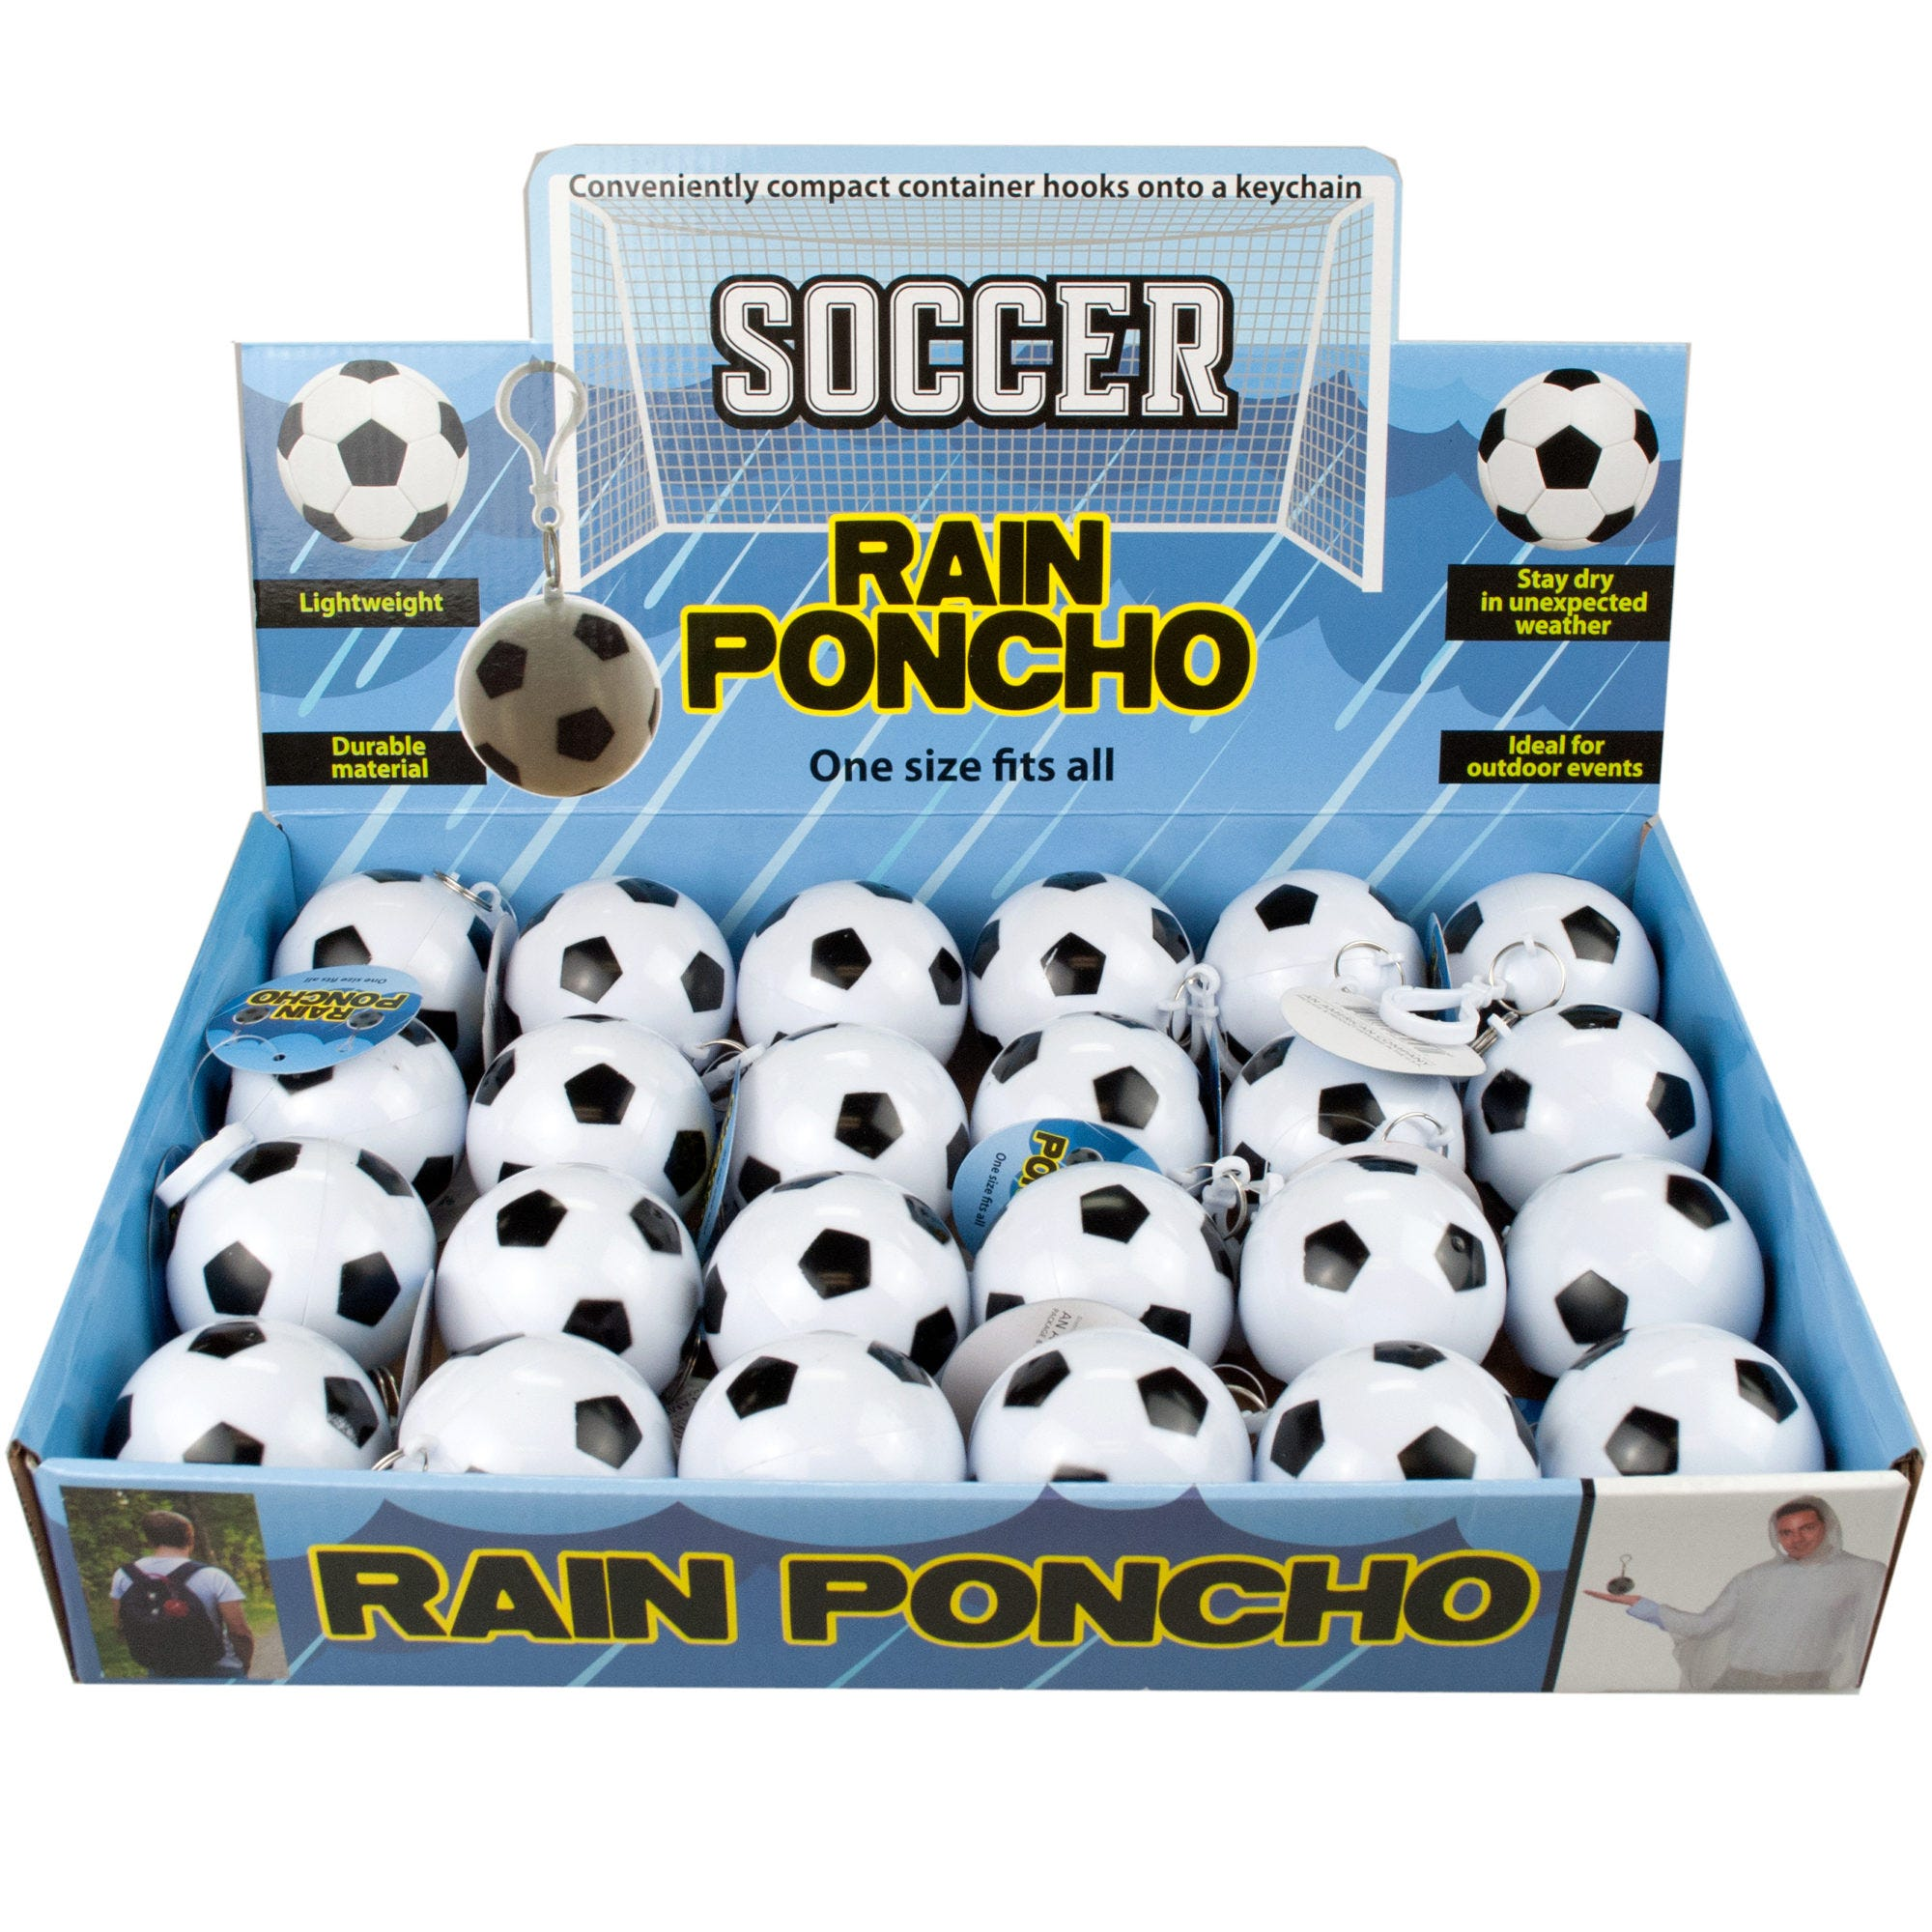 SOCCER Ball Keychain Rain Poncho in Countertop Display- Qty 24